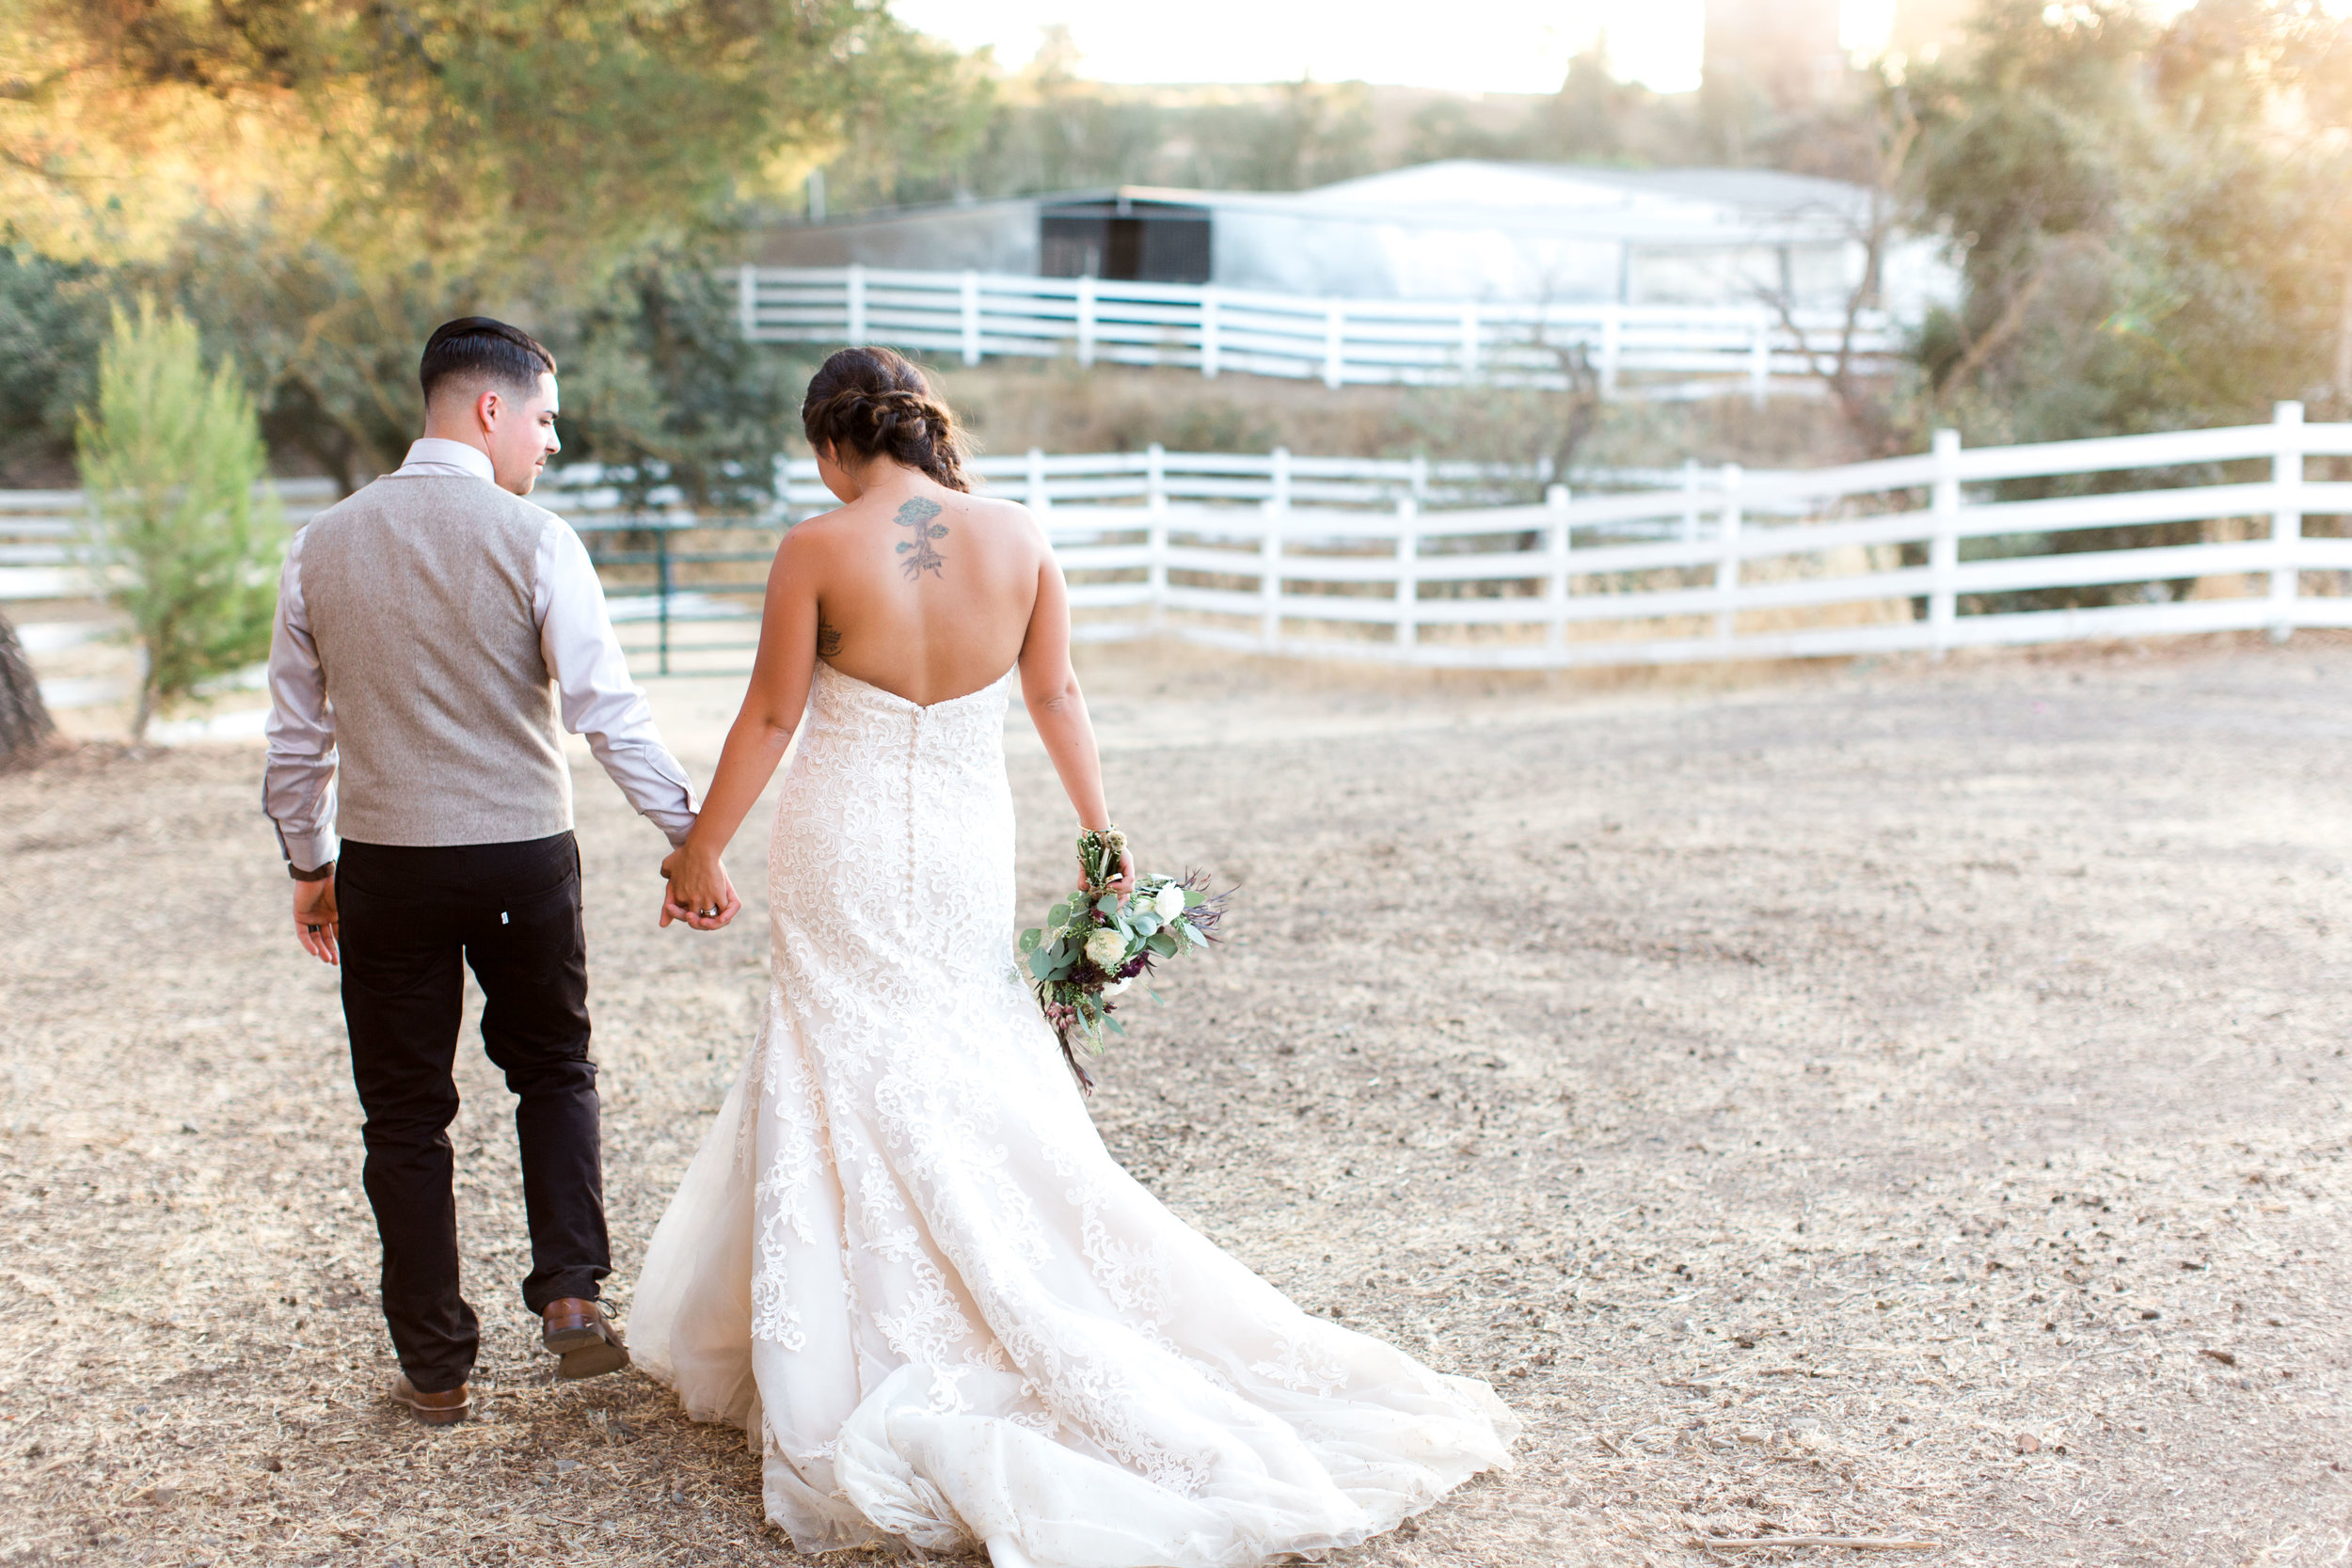 rustic-inspired-ranch-wedding-livermore-california-60.jpg